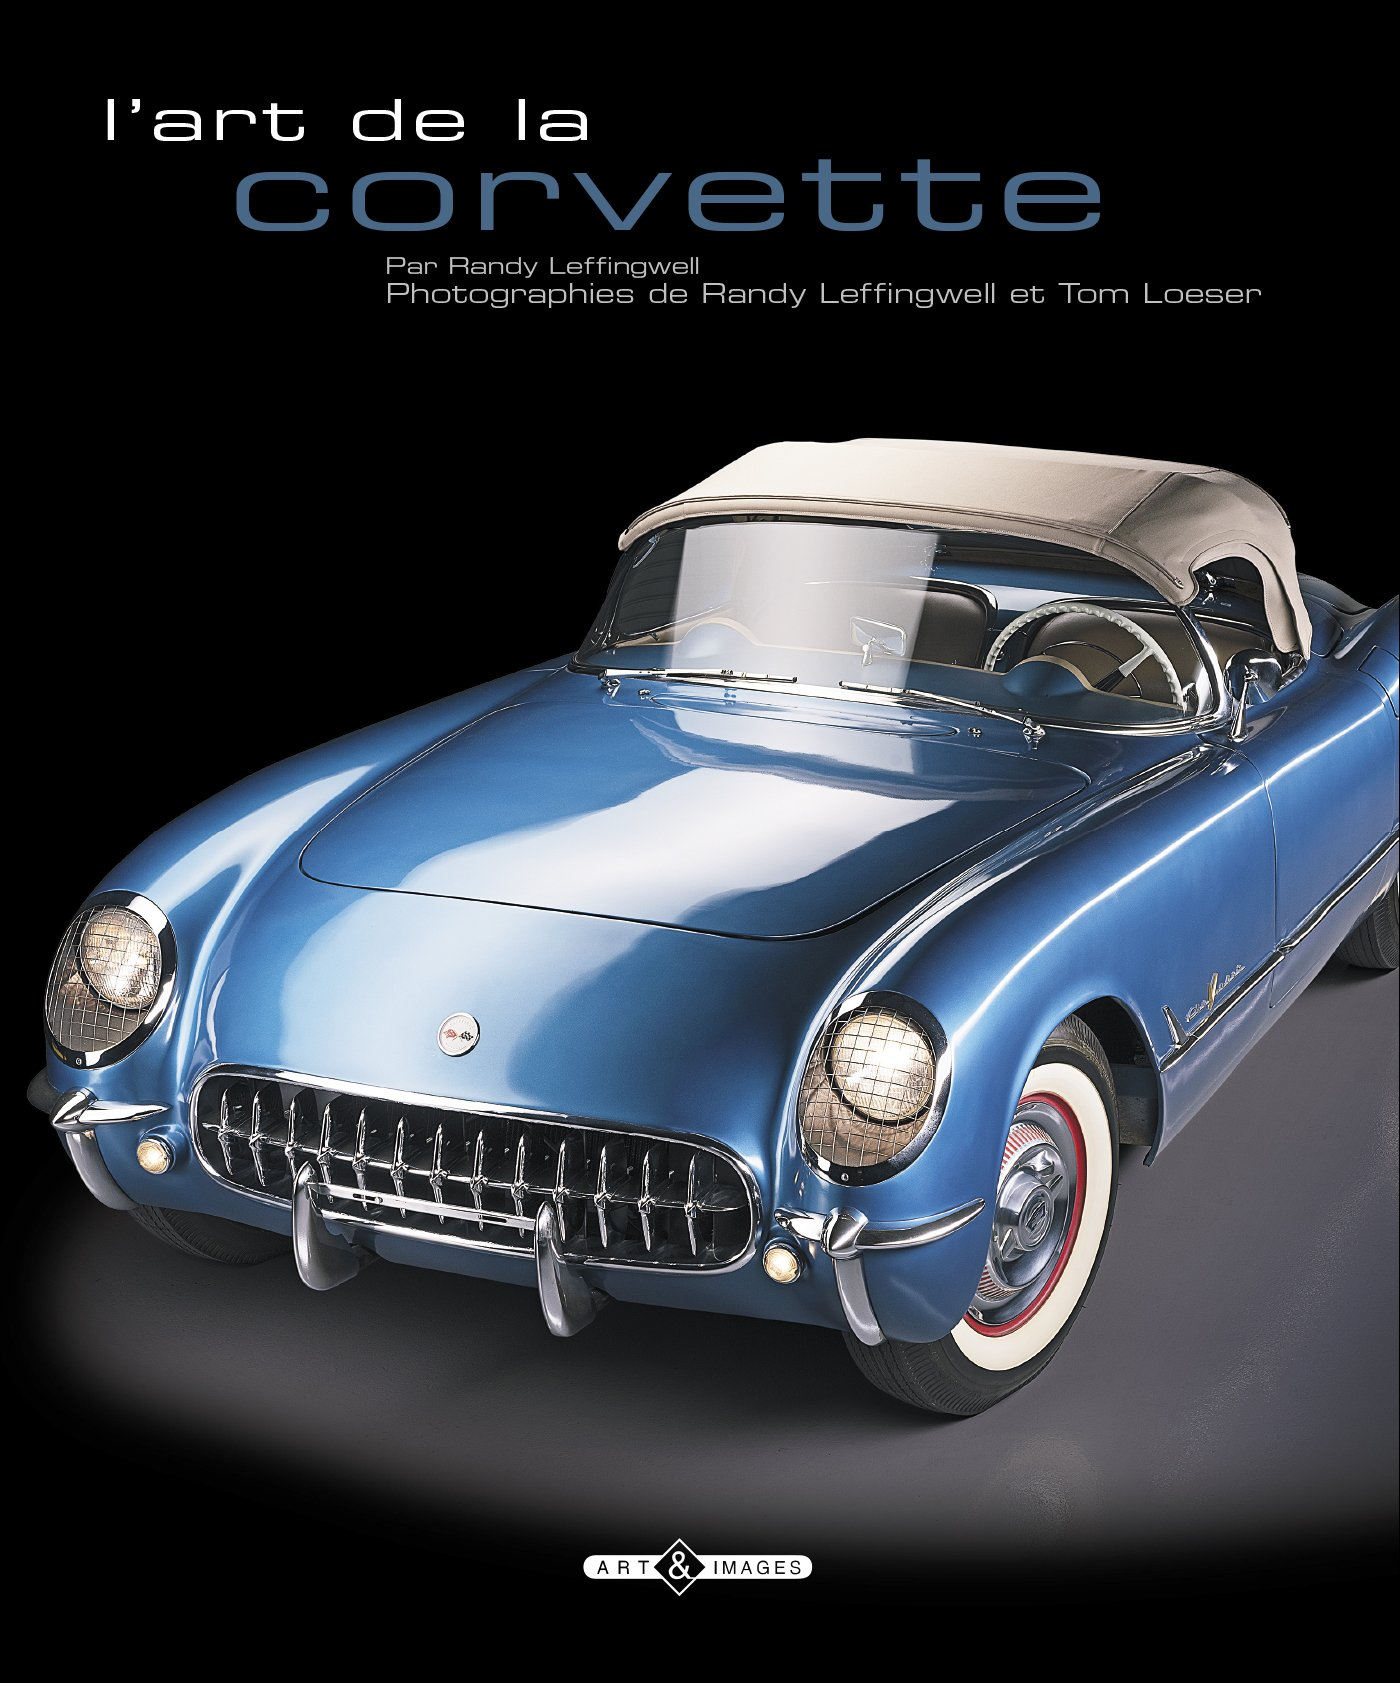 de7e6c0fa3 L art de la corvette  9782913952898  Amazon.com  Books